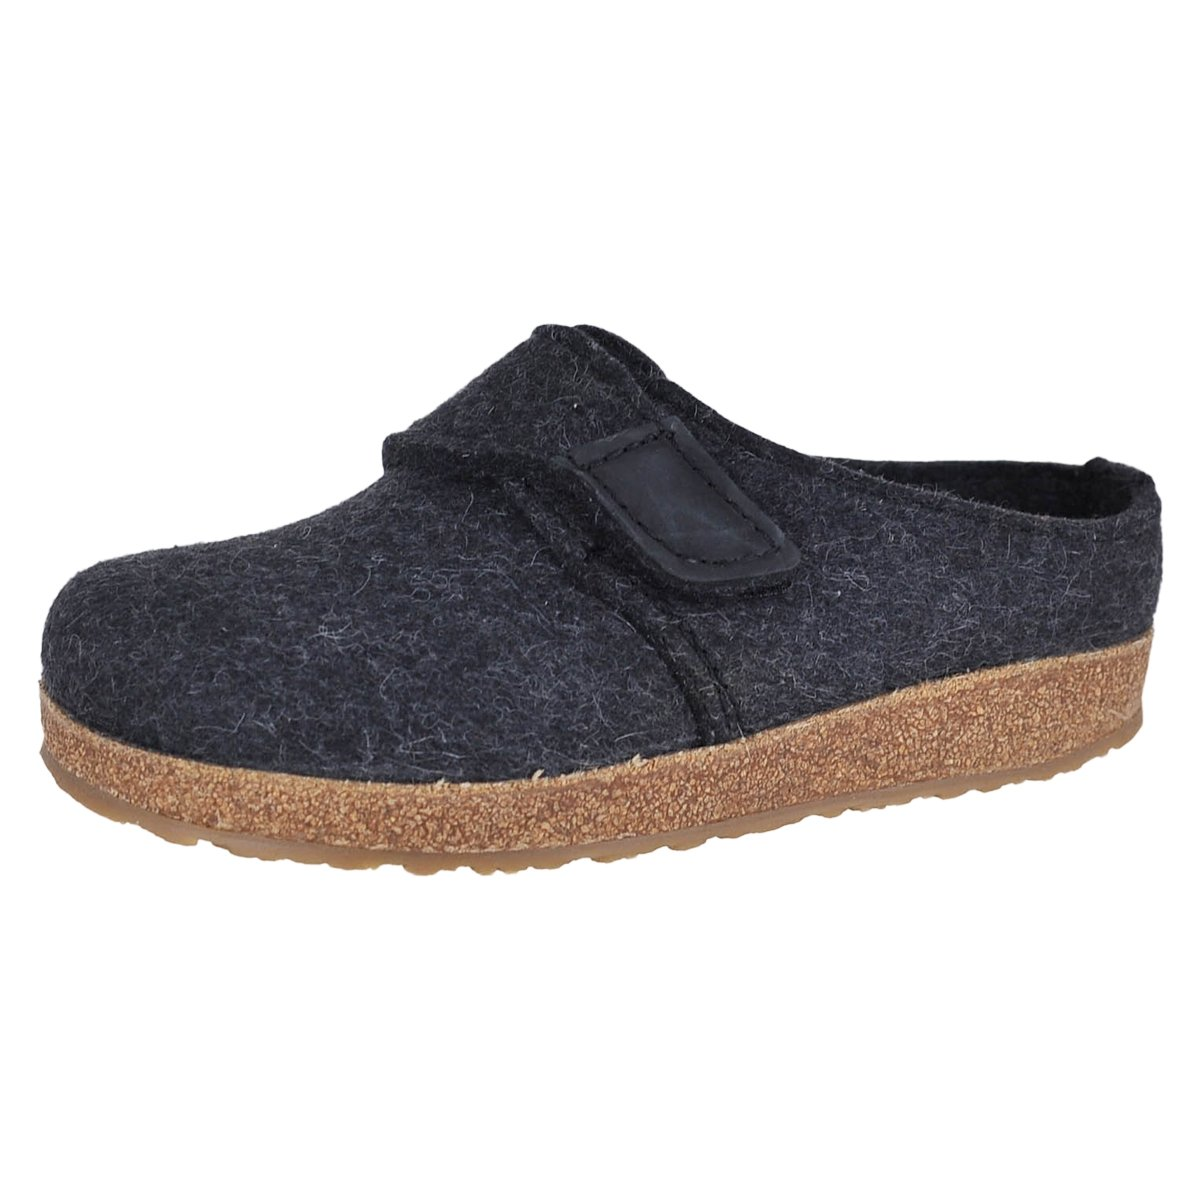 Haflinger Journey Unisex Grizzly Charcoal Clog (37)